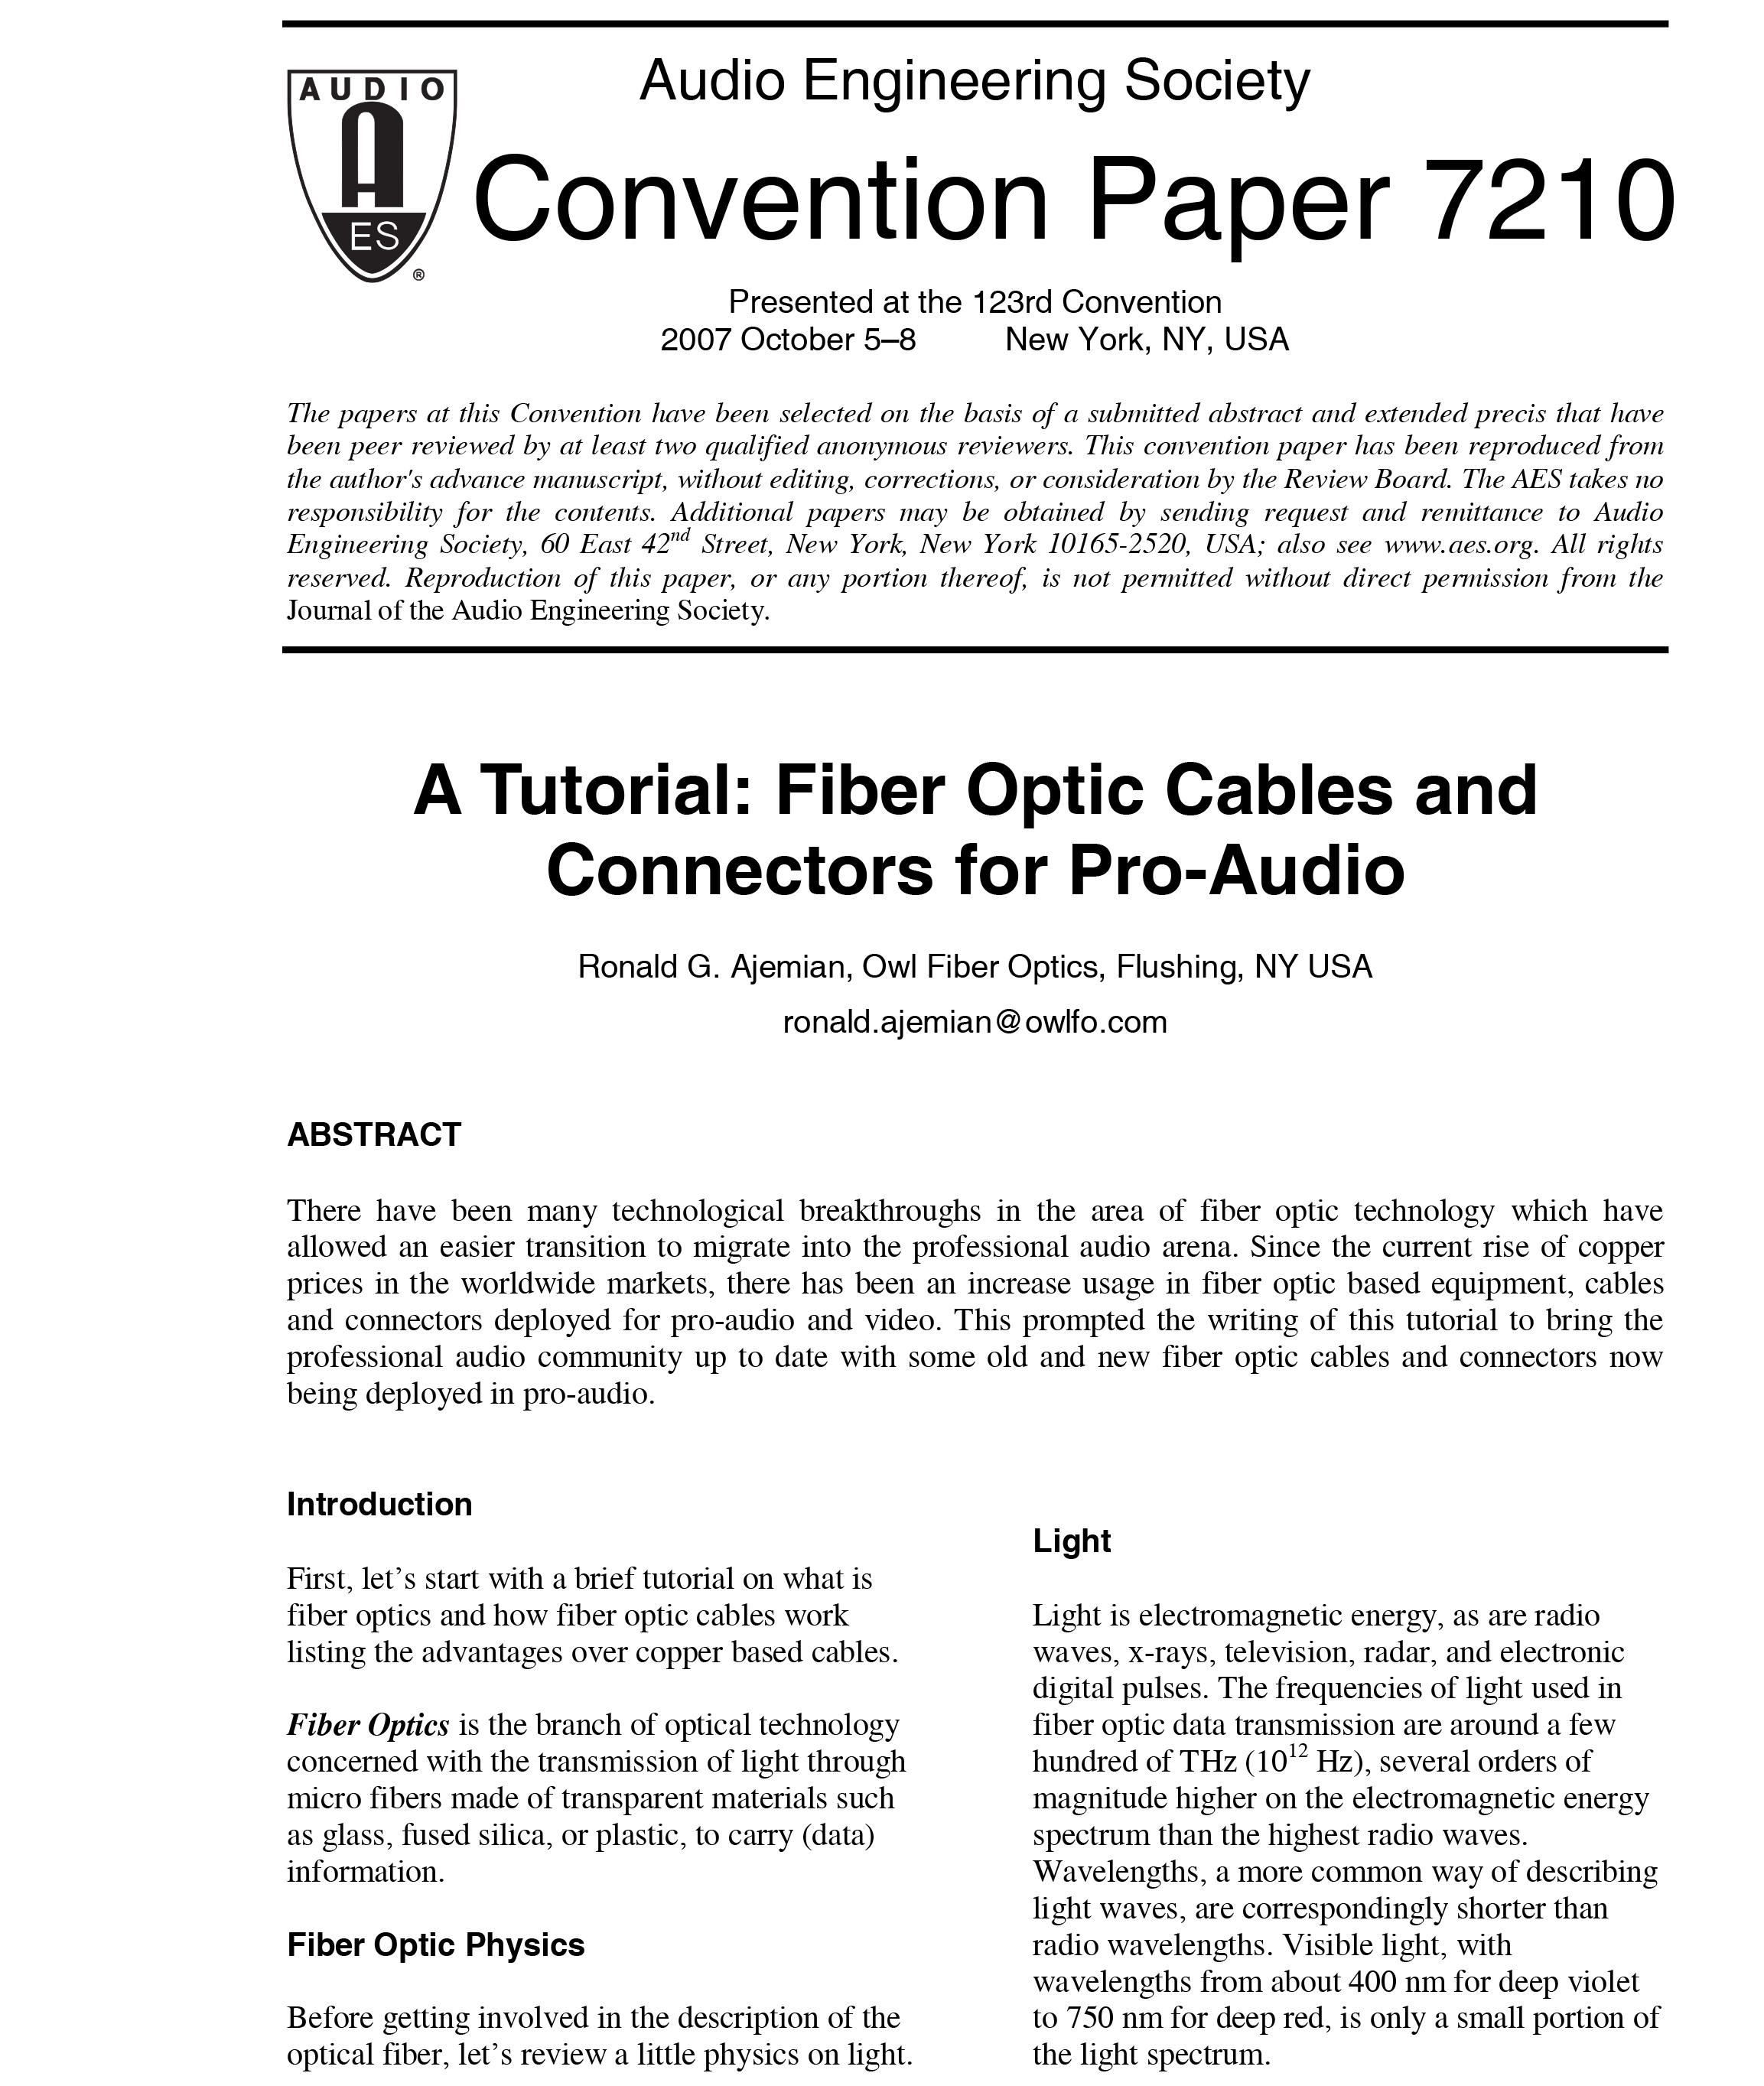 Aes E Library A Tutorial Fiber Optic Cables And Connectors For Radar Utilizing On Wiring In House Pro Audio